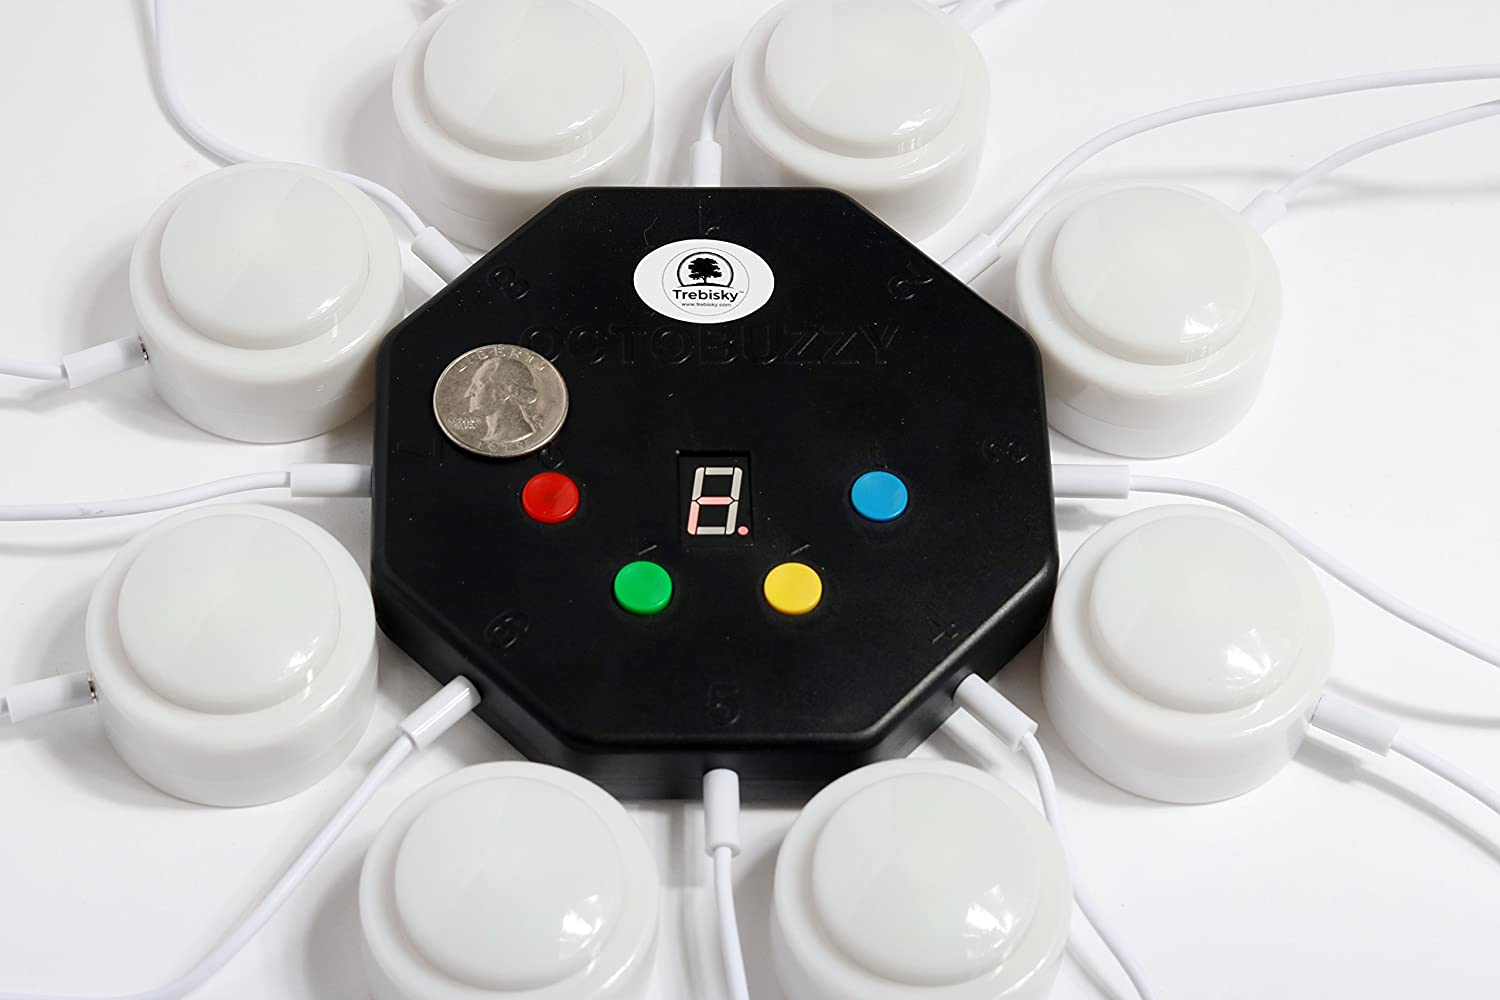 Trebisky Quiz Answer Game Buzzer Standalone System W Show Find Great Deals On Ebay For Led Light Buttons 8 Player 3ft Cables Whos First 2nd Gen Toys Games